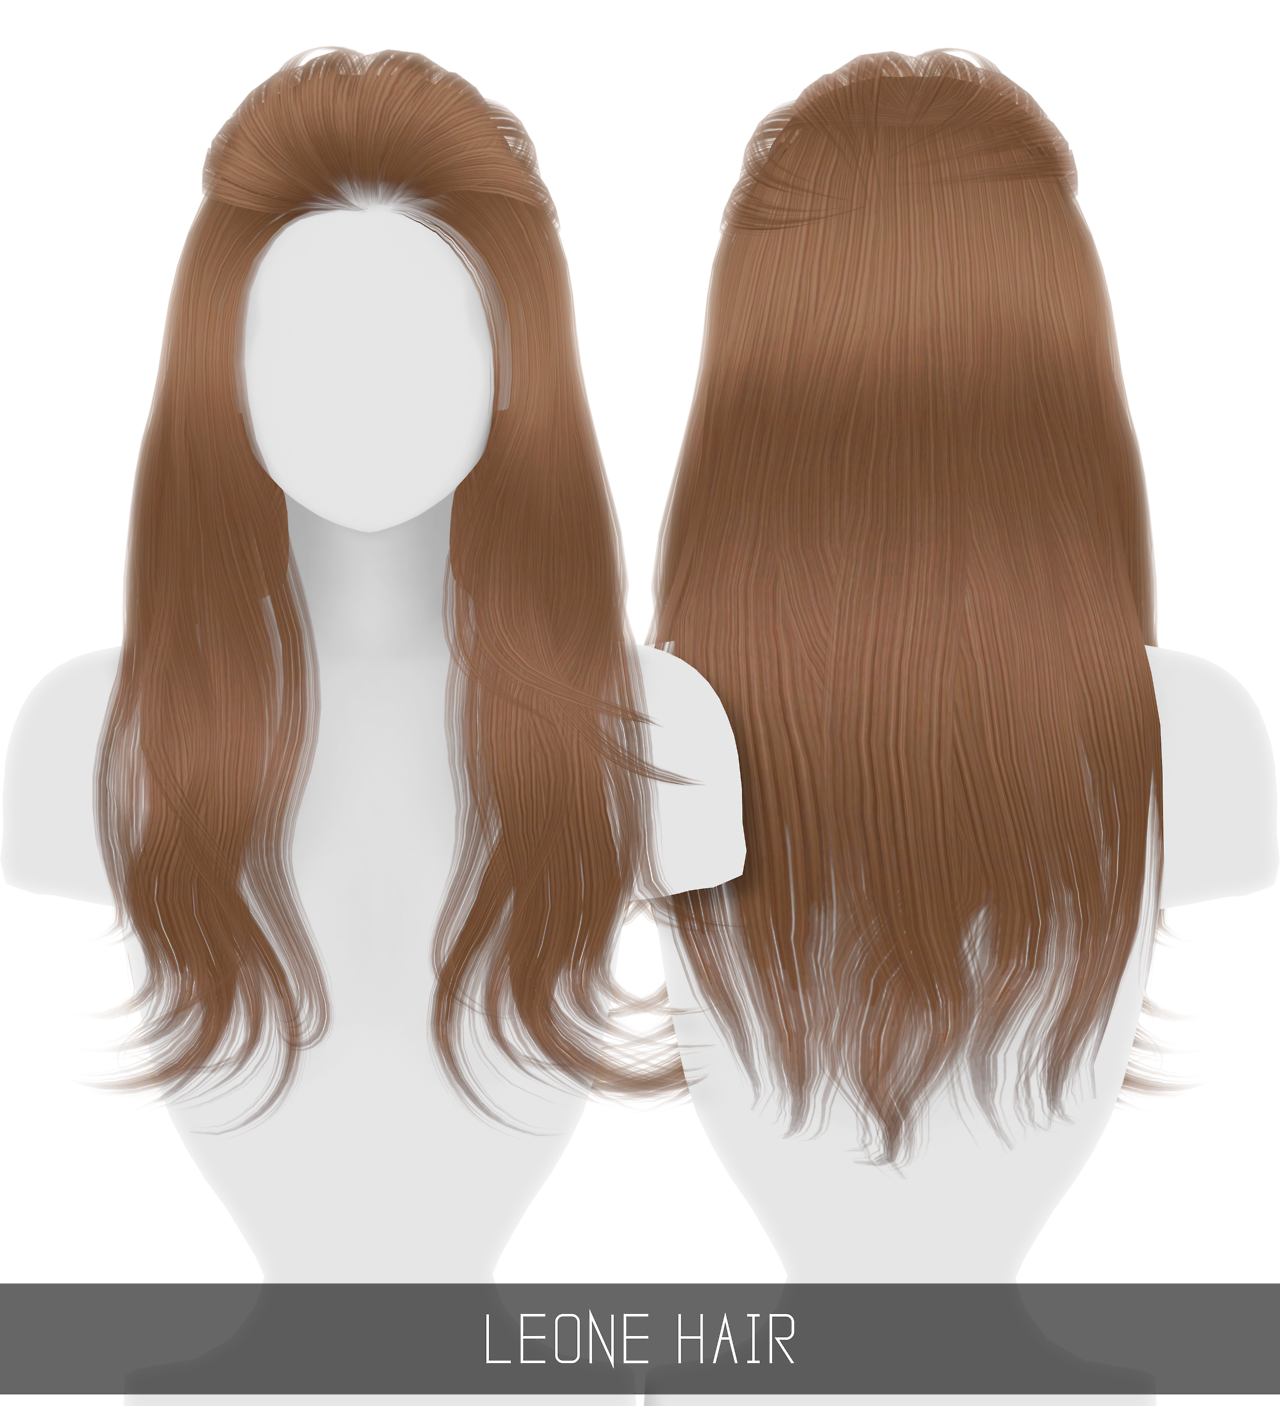 Lana Cc Finds Leone Hair Sims 4 Sims Hair Sims Showing you all the cc finds for hair. pinterest